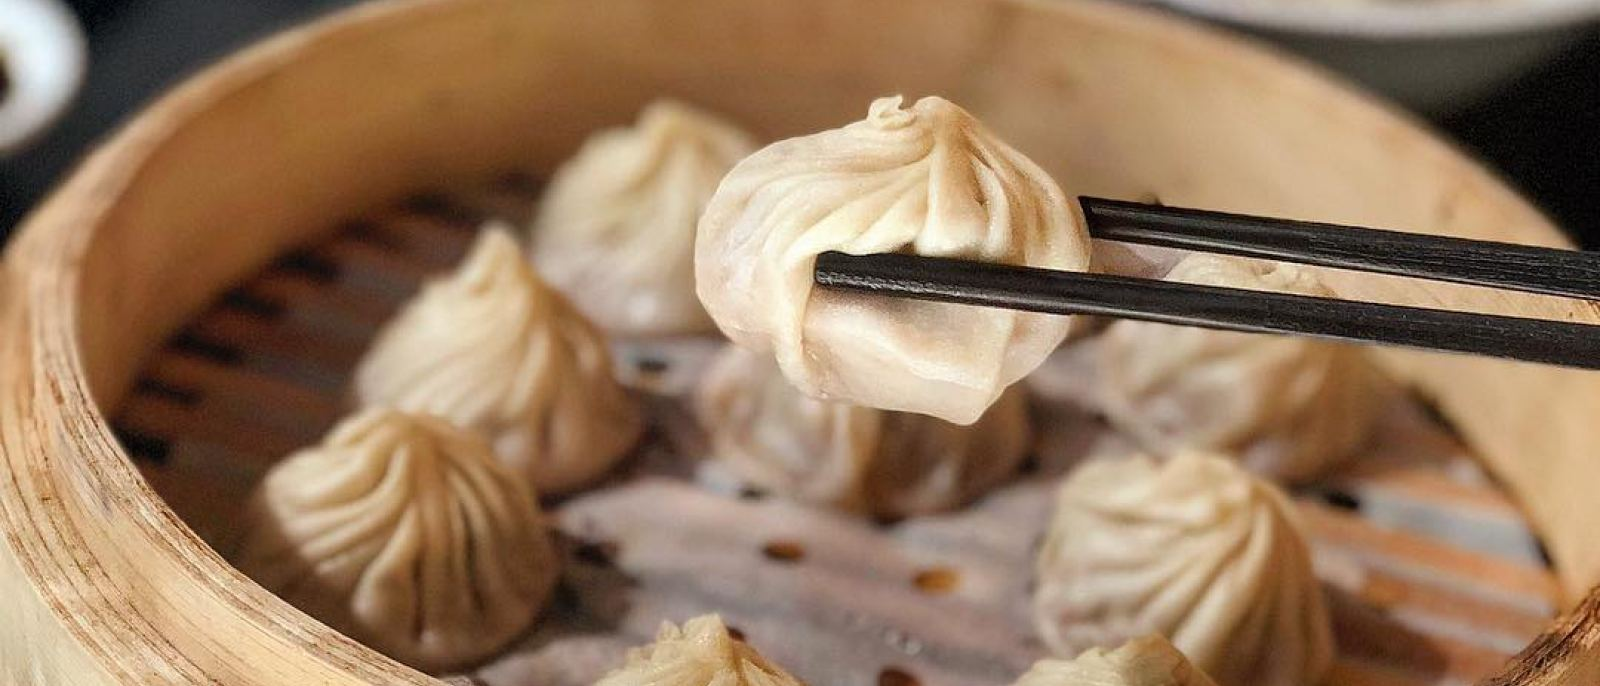 Pork & shrimp xiao long bao at Din Tai Fung Westfield Century City   Instagram by @_hungrybabe_